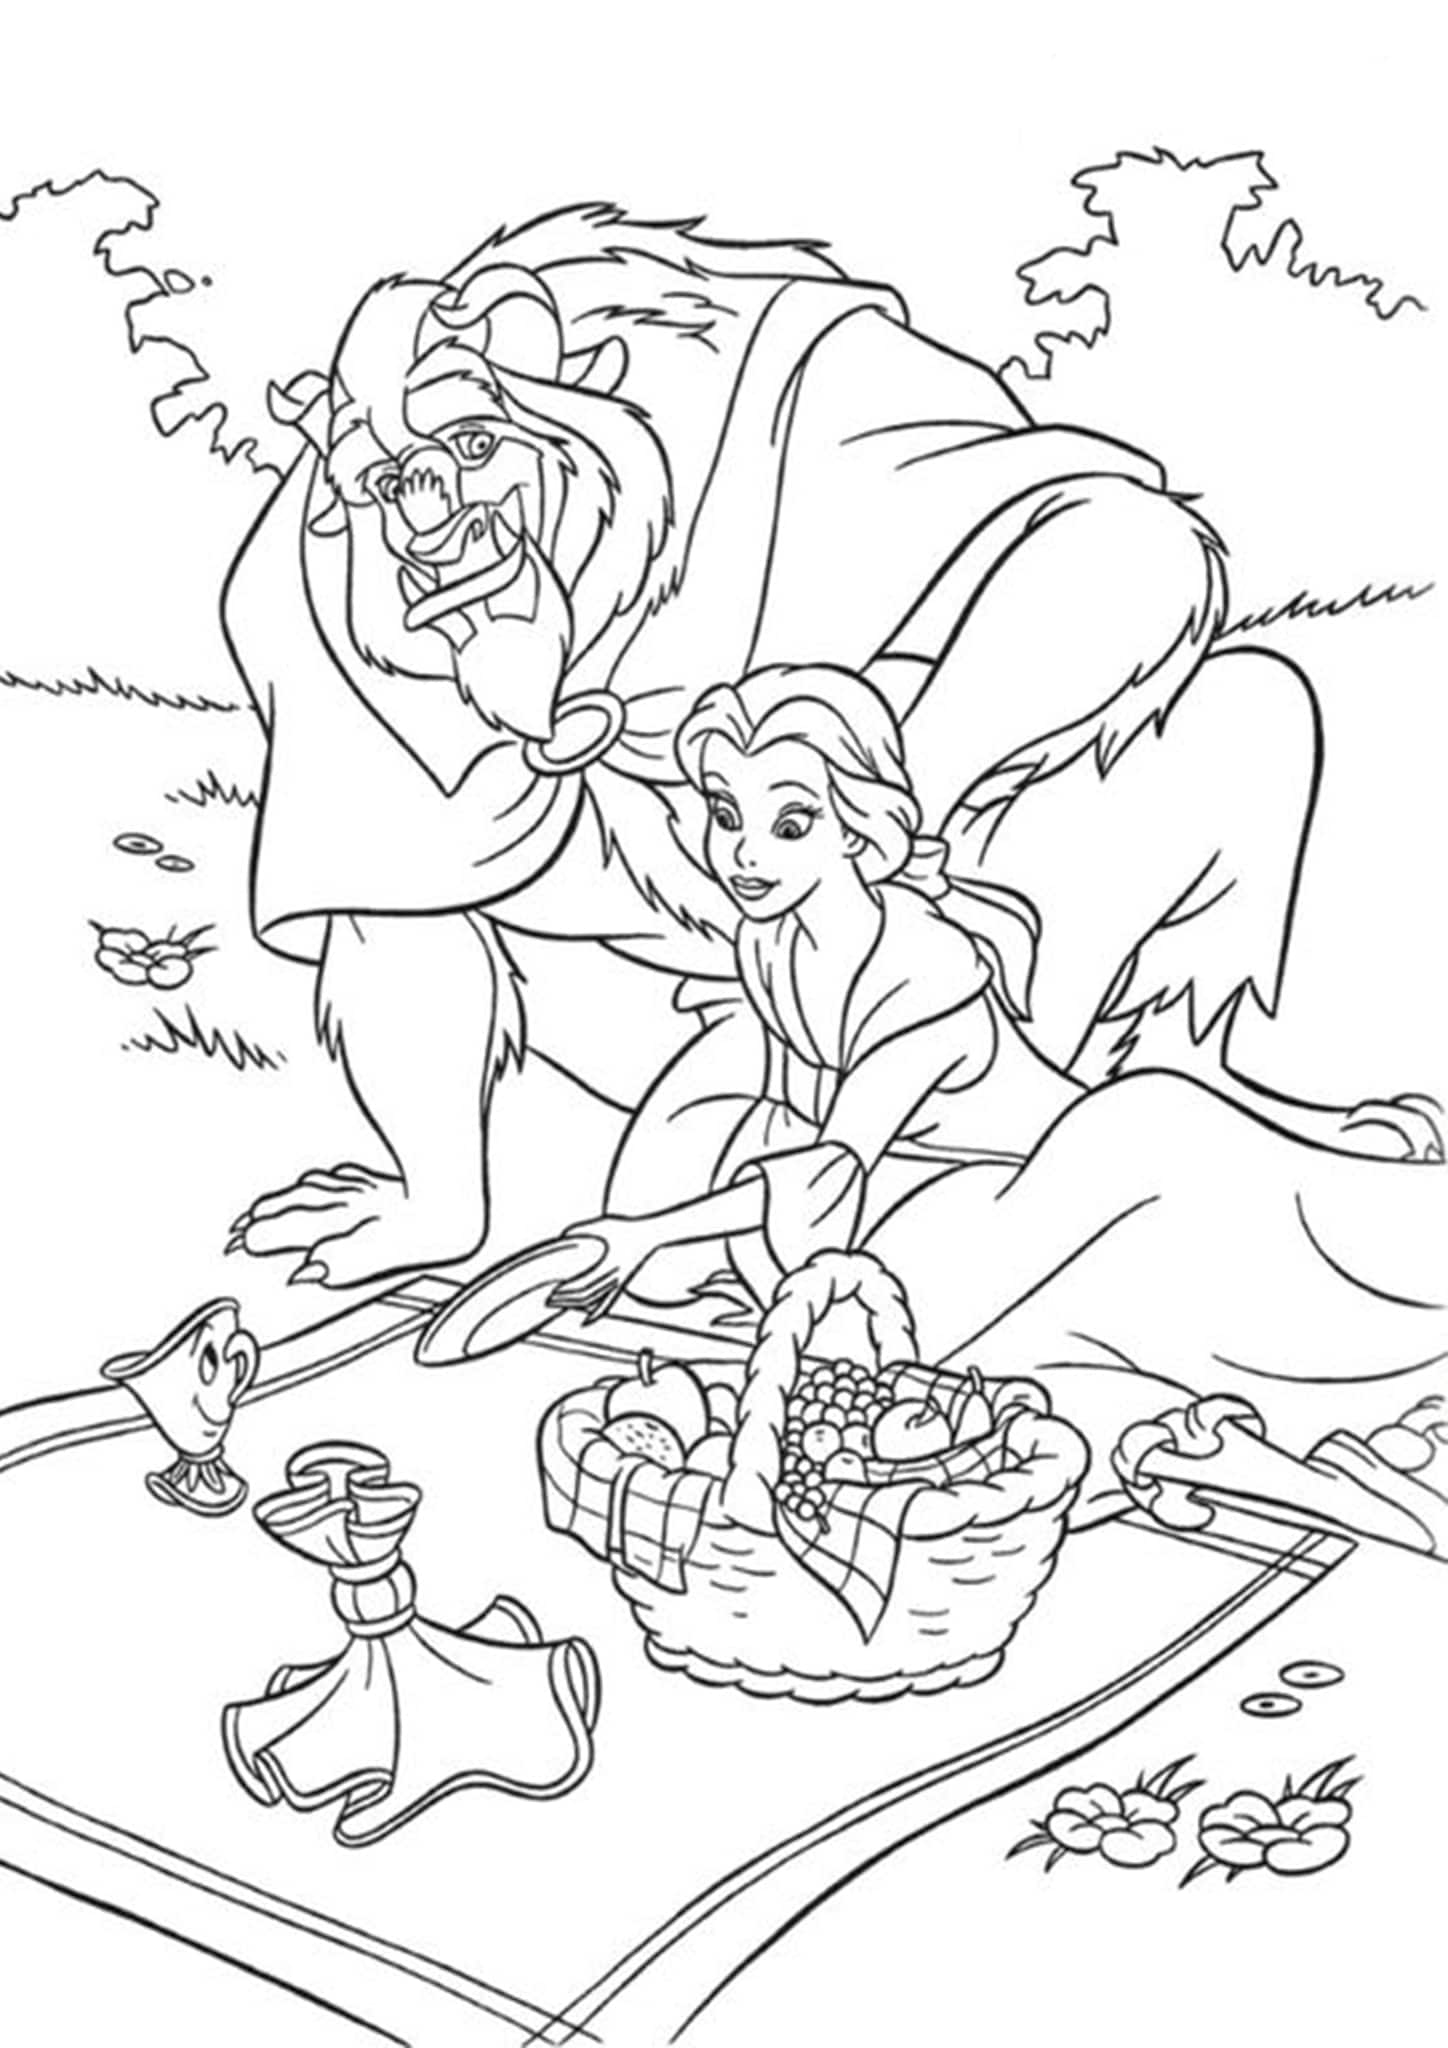 beauty and the beast colouring page beauty and the beast coloring pages 2 disneyclipscom beast colouring beauty page the and